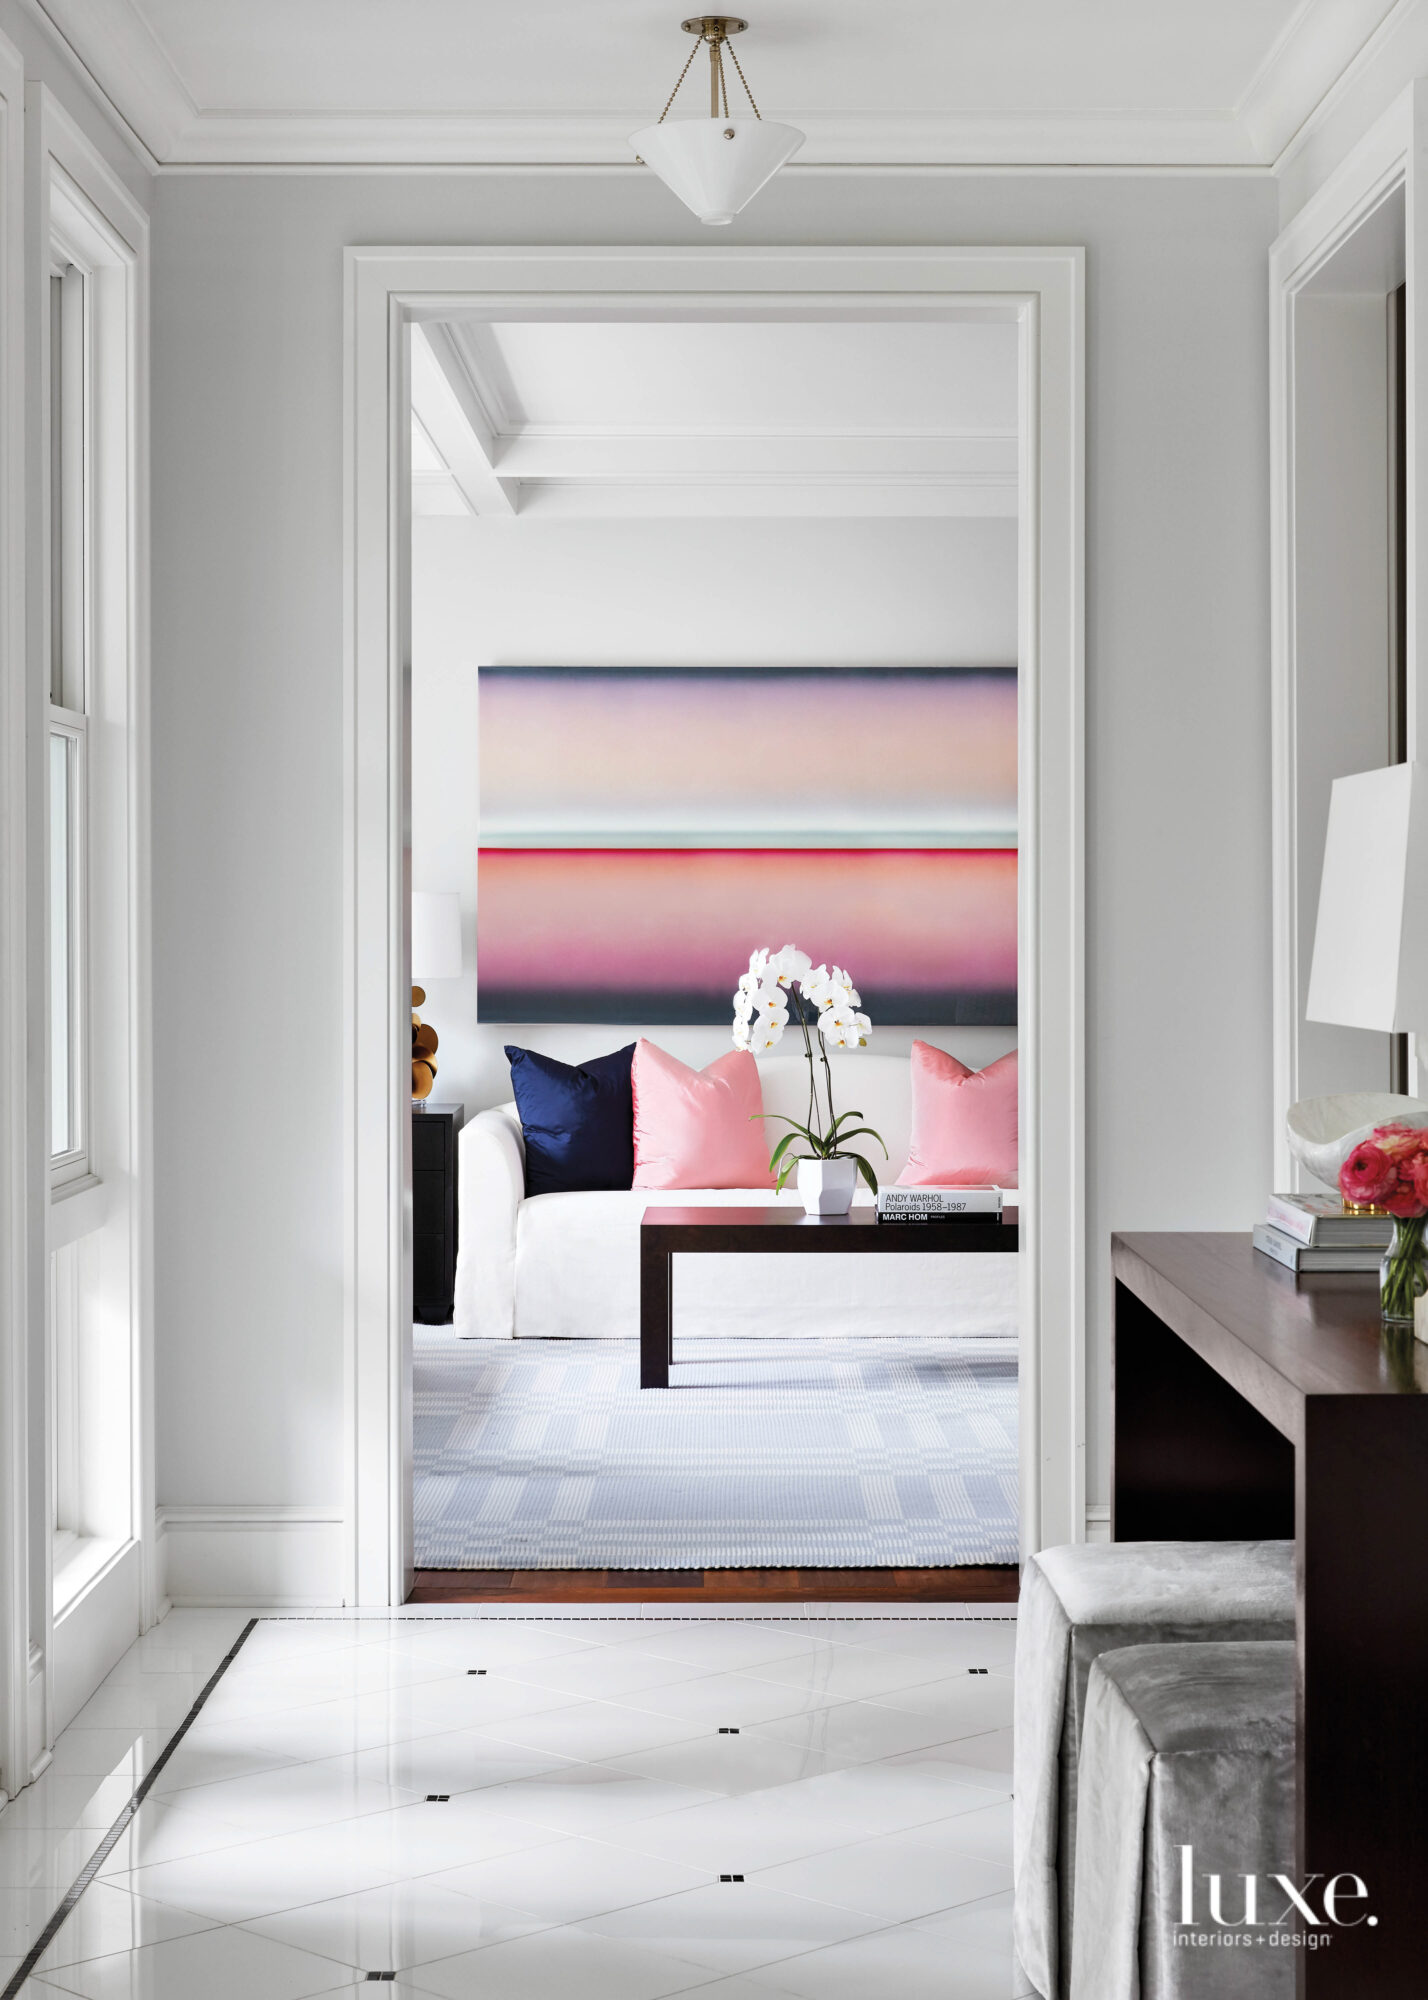 From the foyer you can see Into the living room where a pink-purple-and-blue painting by Casper Brindle hangs above the sofa.